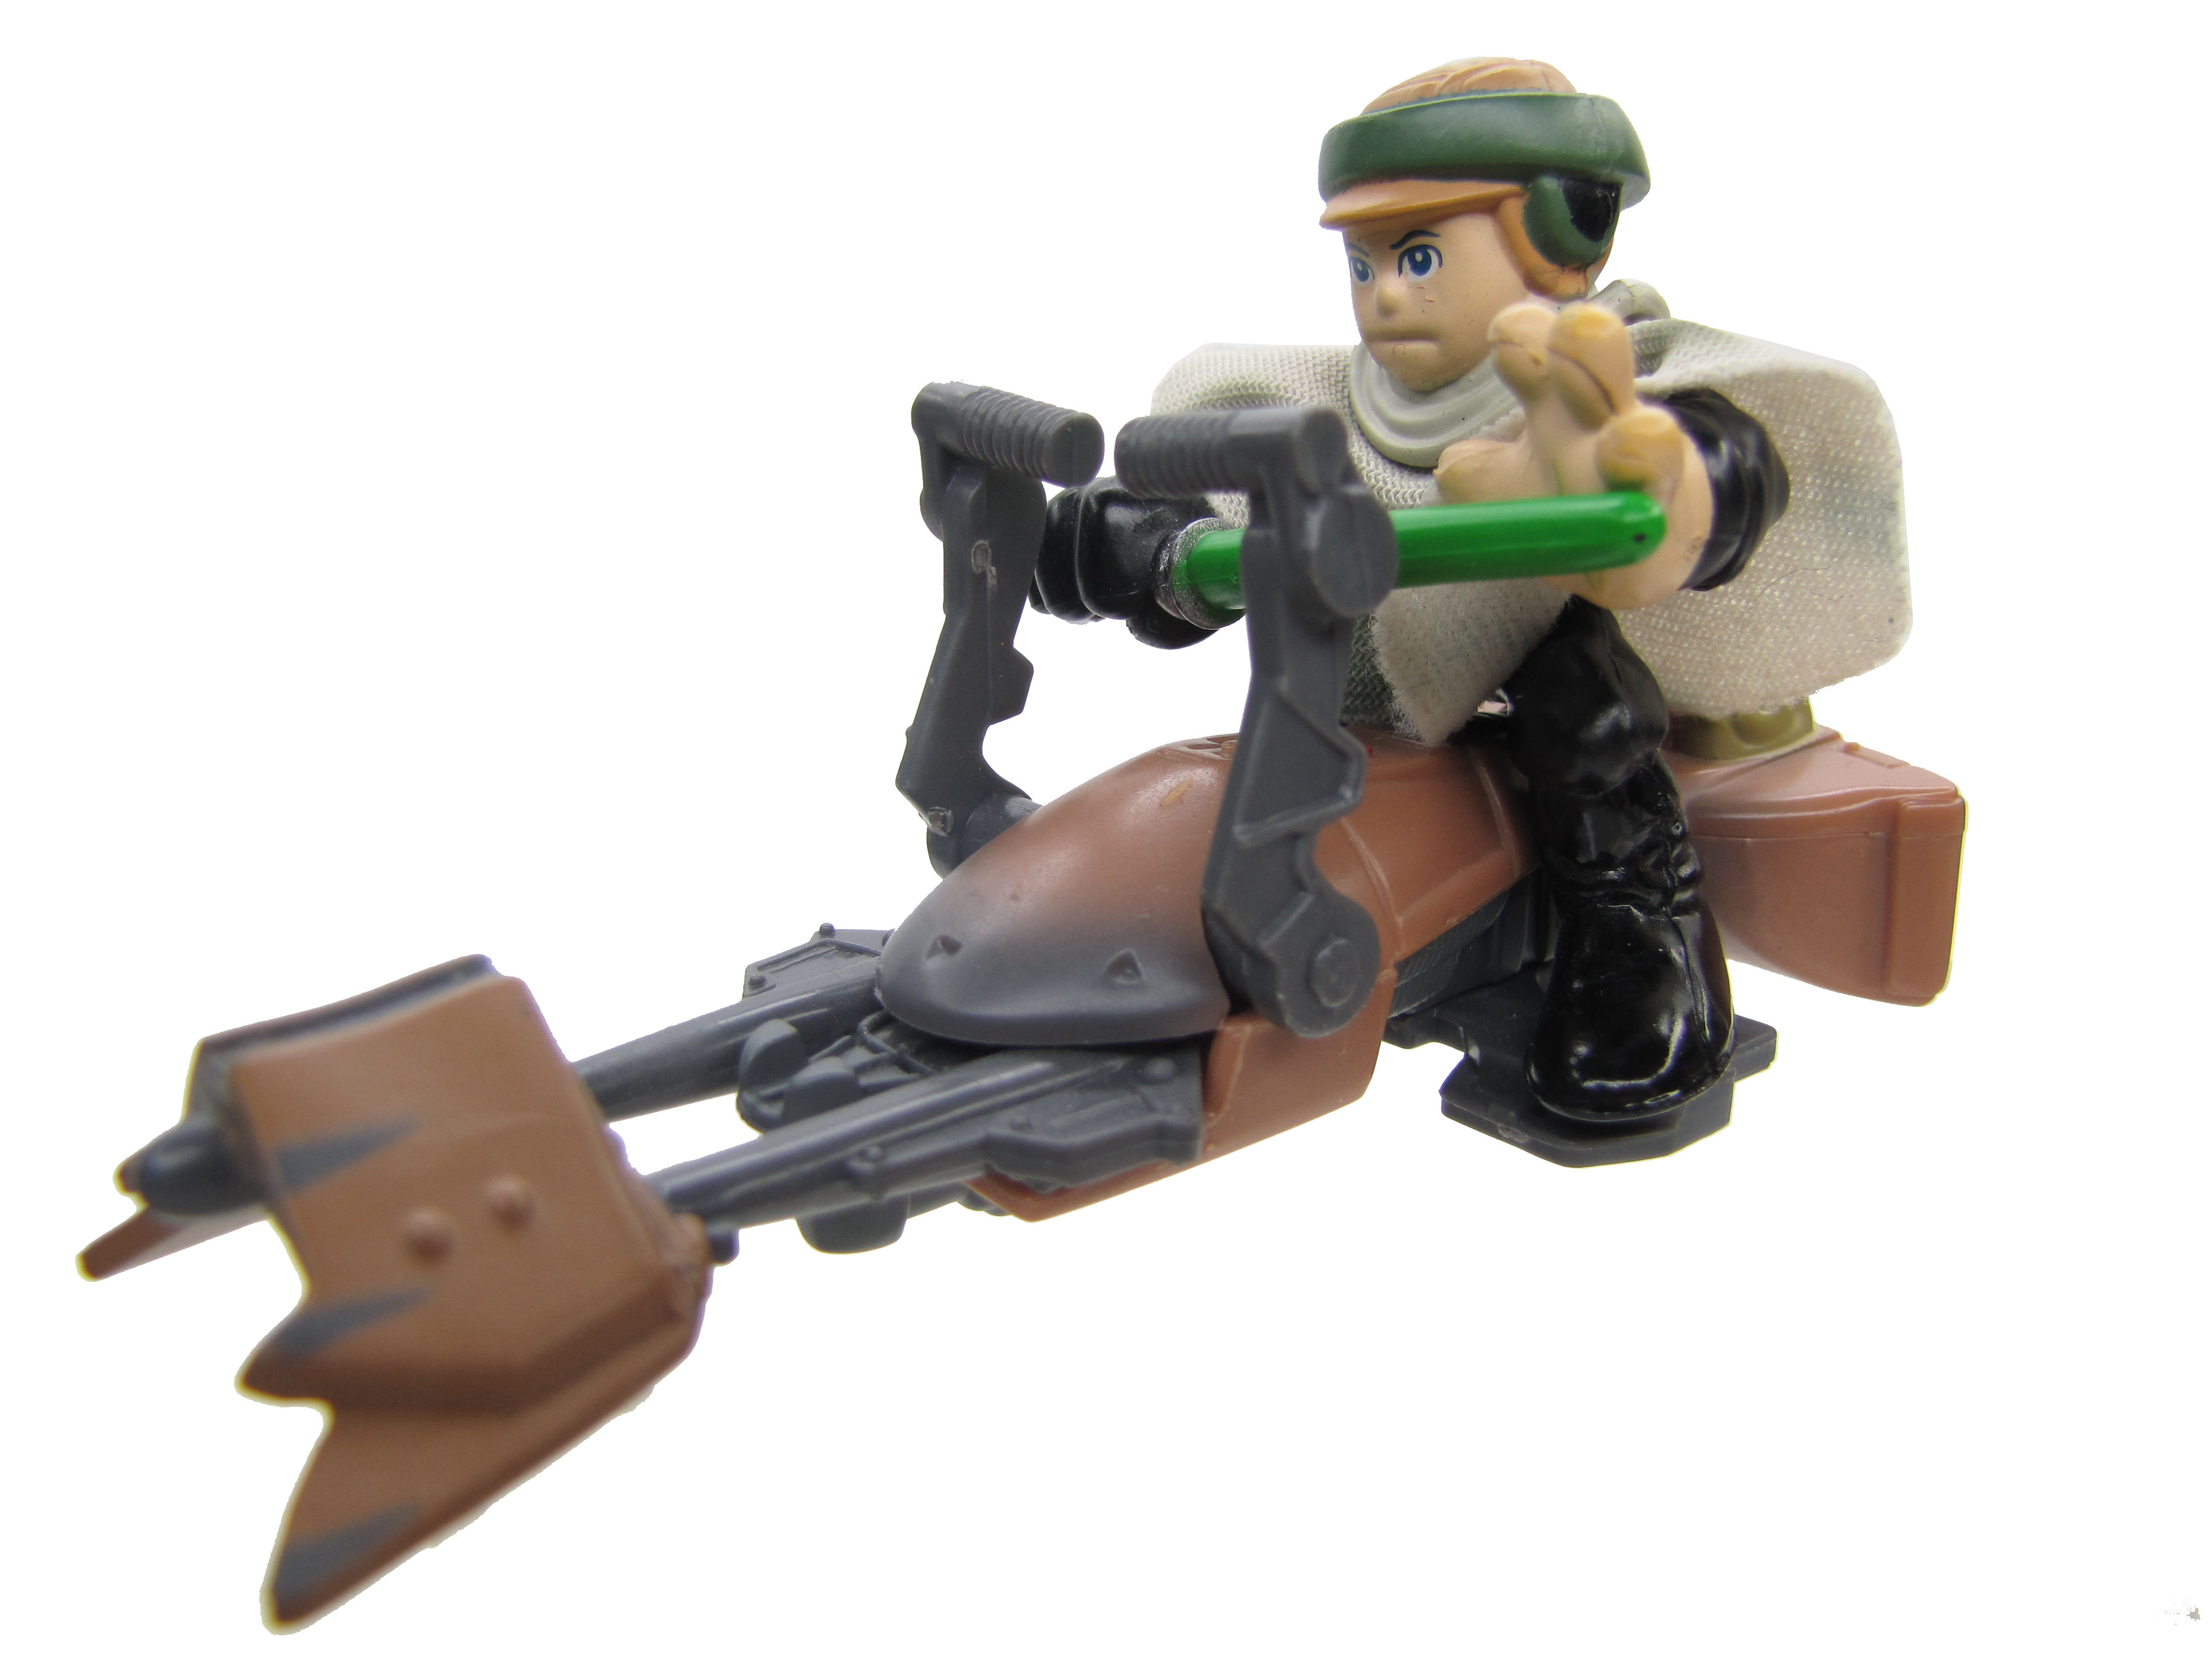 Star Wars Galactic Heroes Luke Skywalker on Speeder Bike